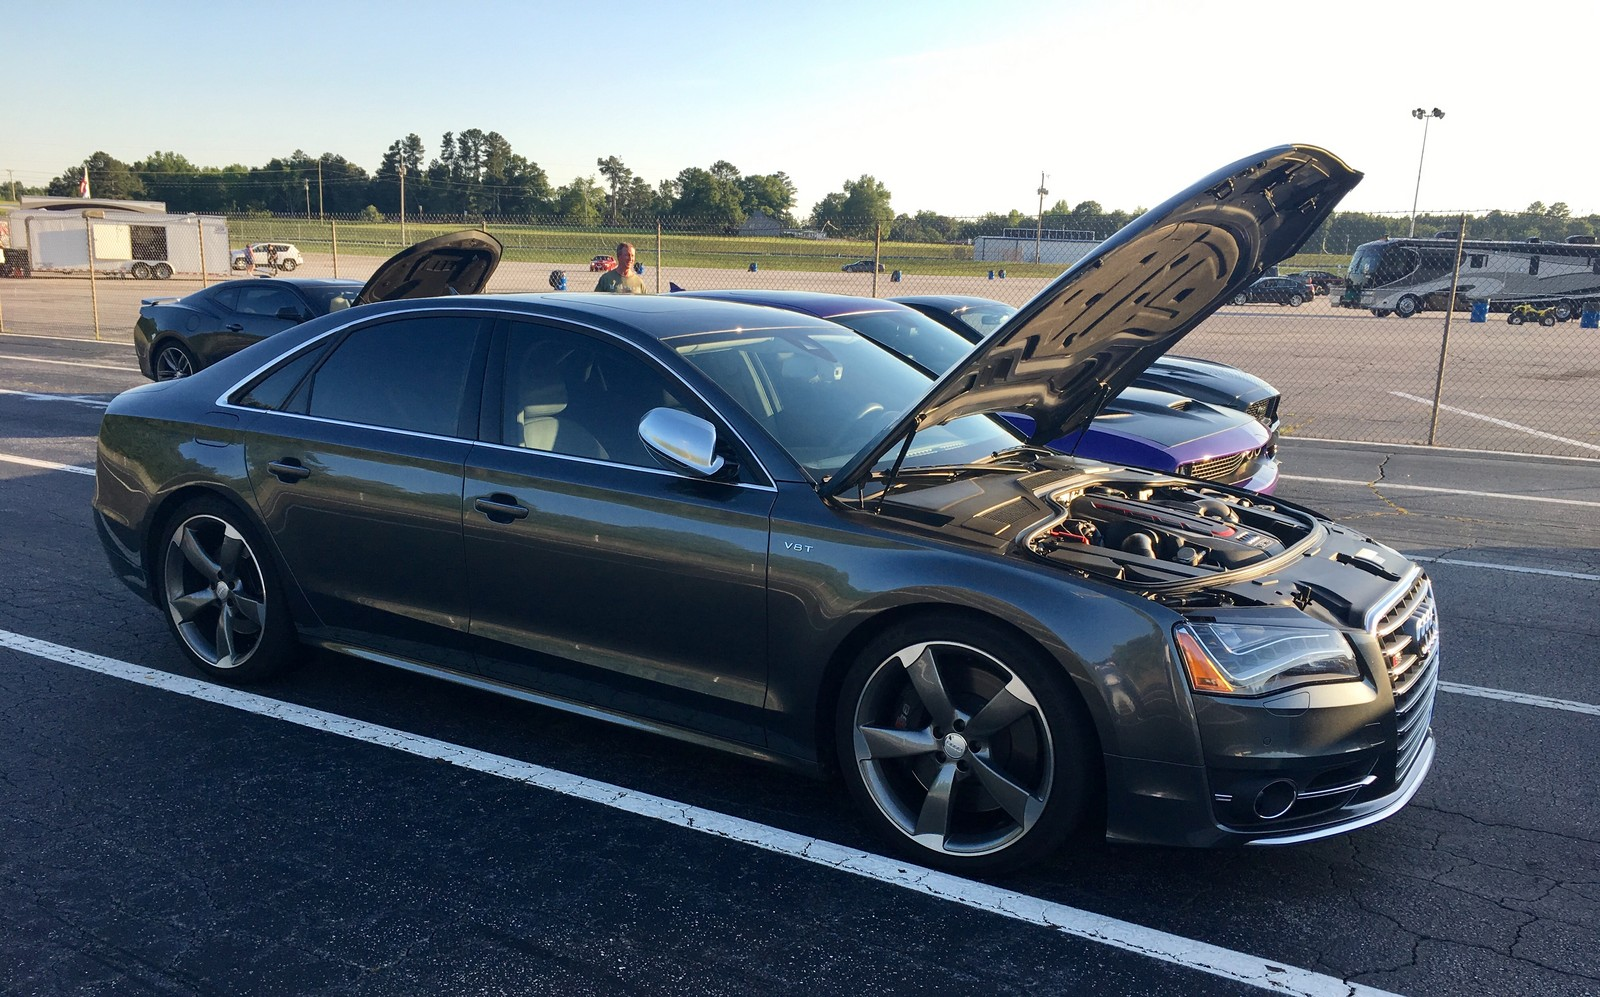 Stock 2014 Audi S8 1 4 Mile Drag Racing Timeslip Specs 0 60